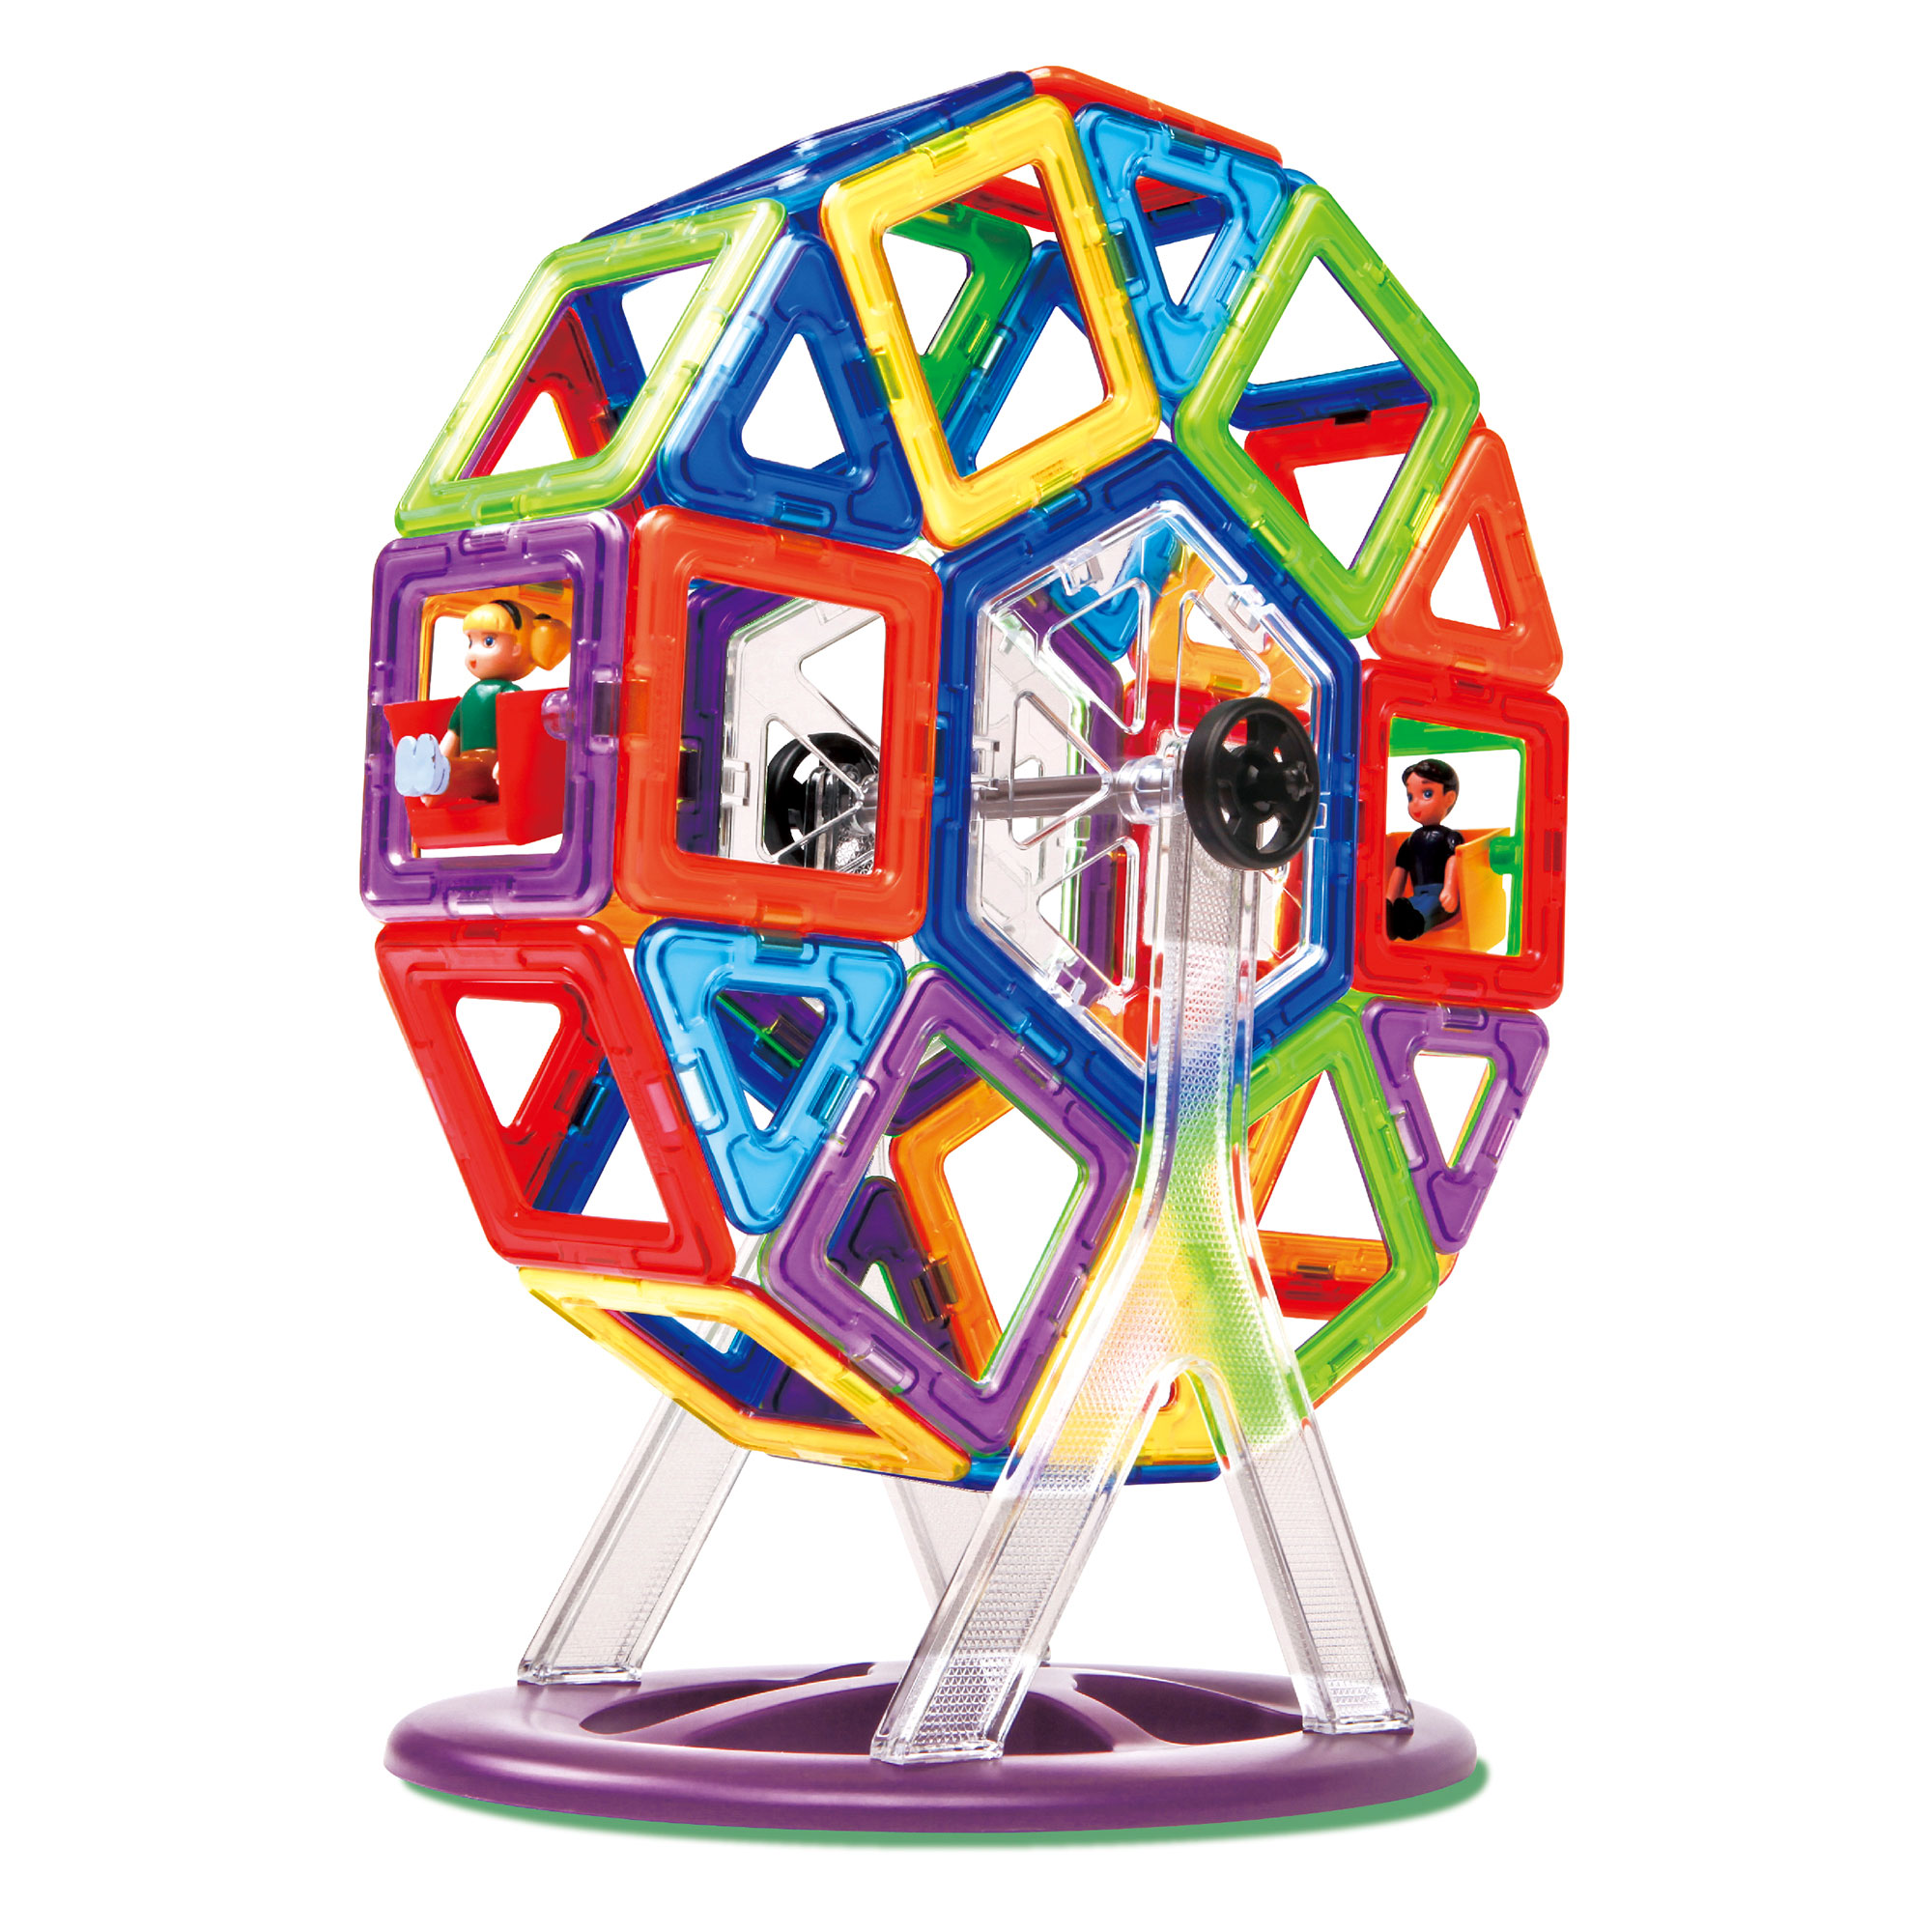 Magformers Carnival Set | Buy Online Magnetic Construction